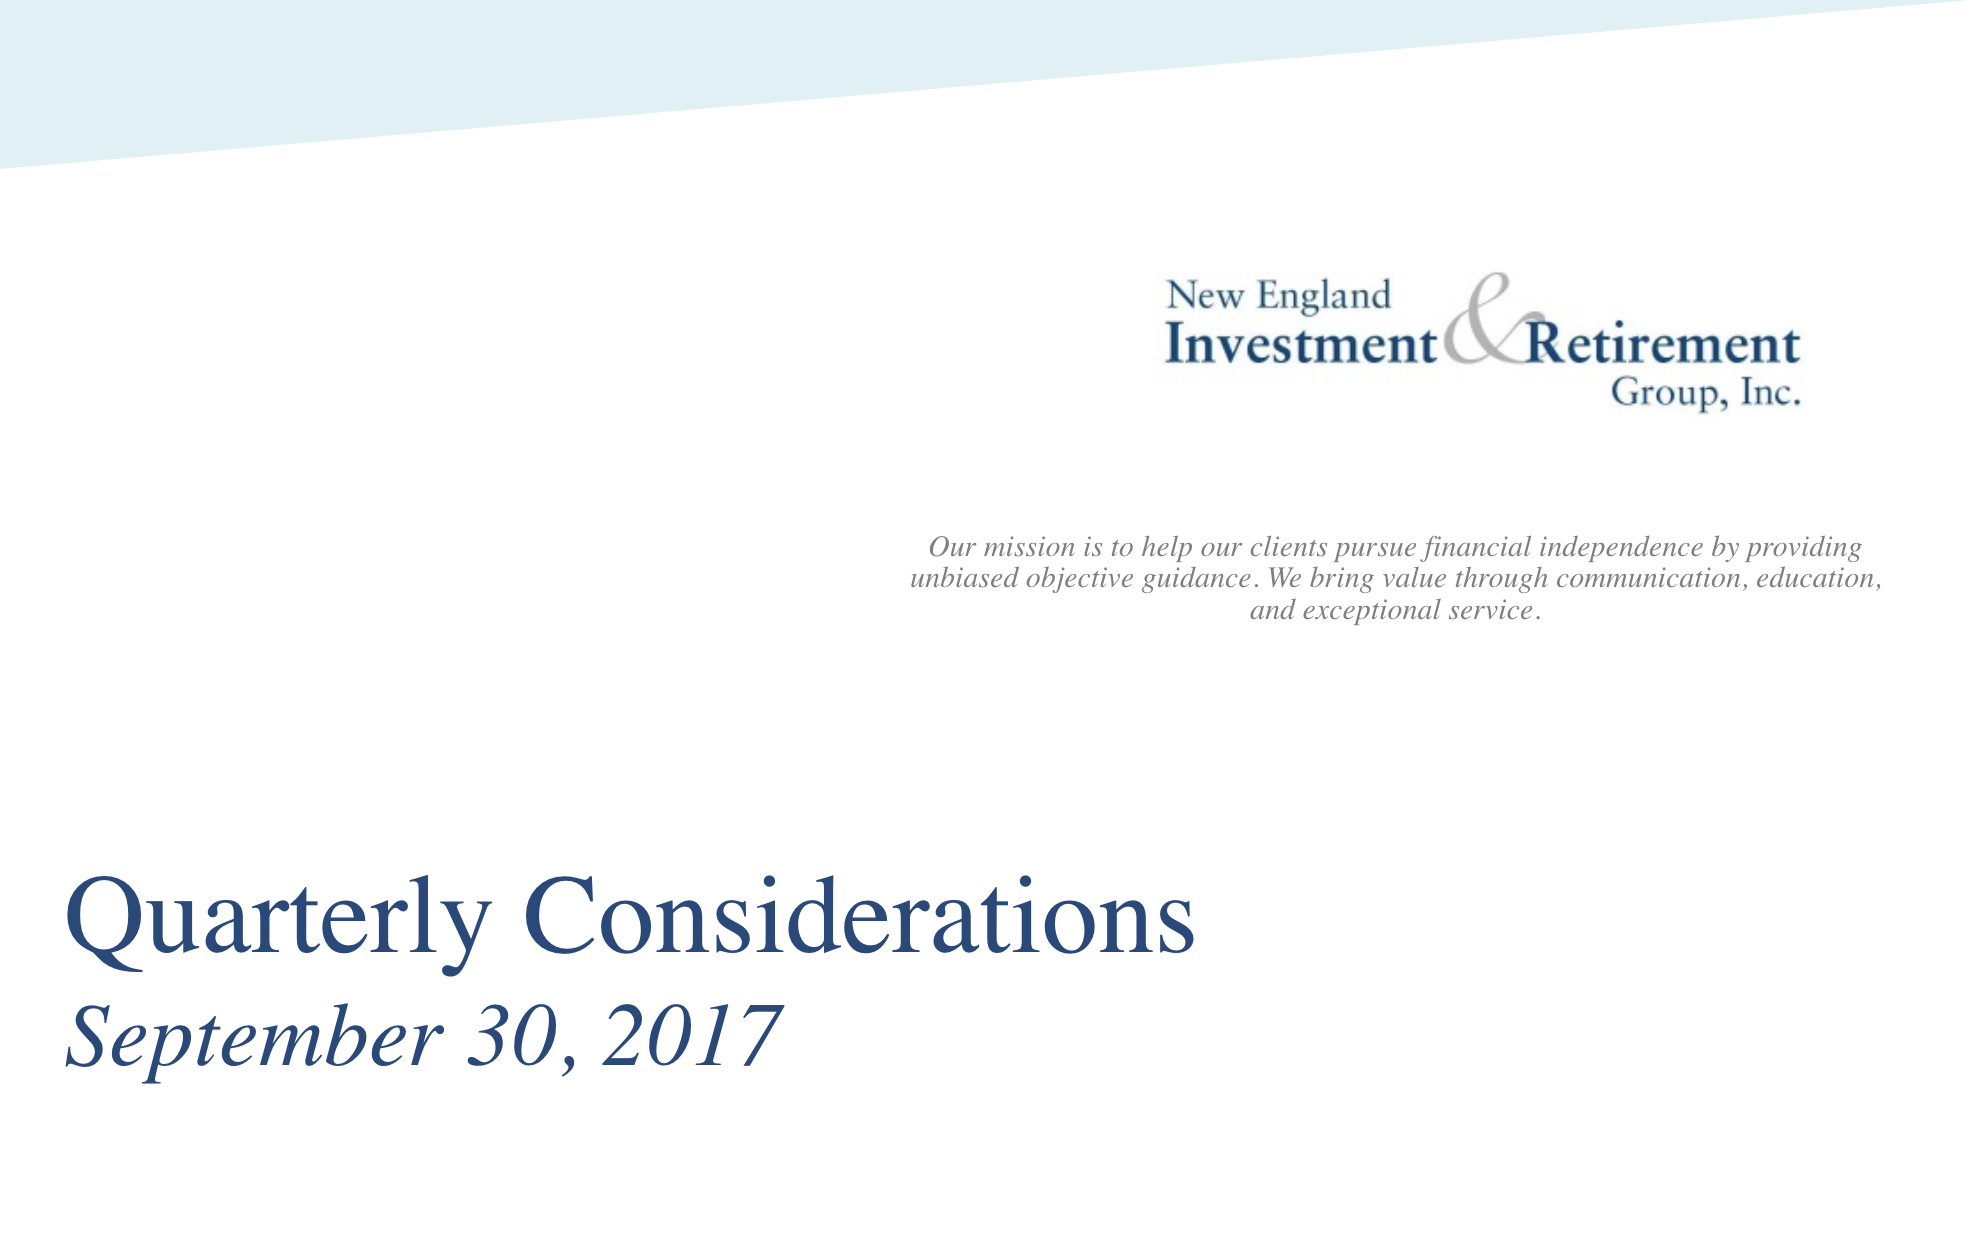 New England Investment & Retirement Group Quarterly Considerations: September 30th, 2017